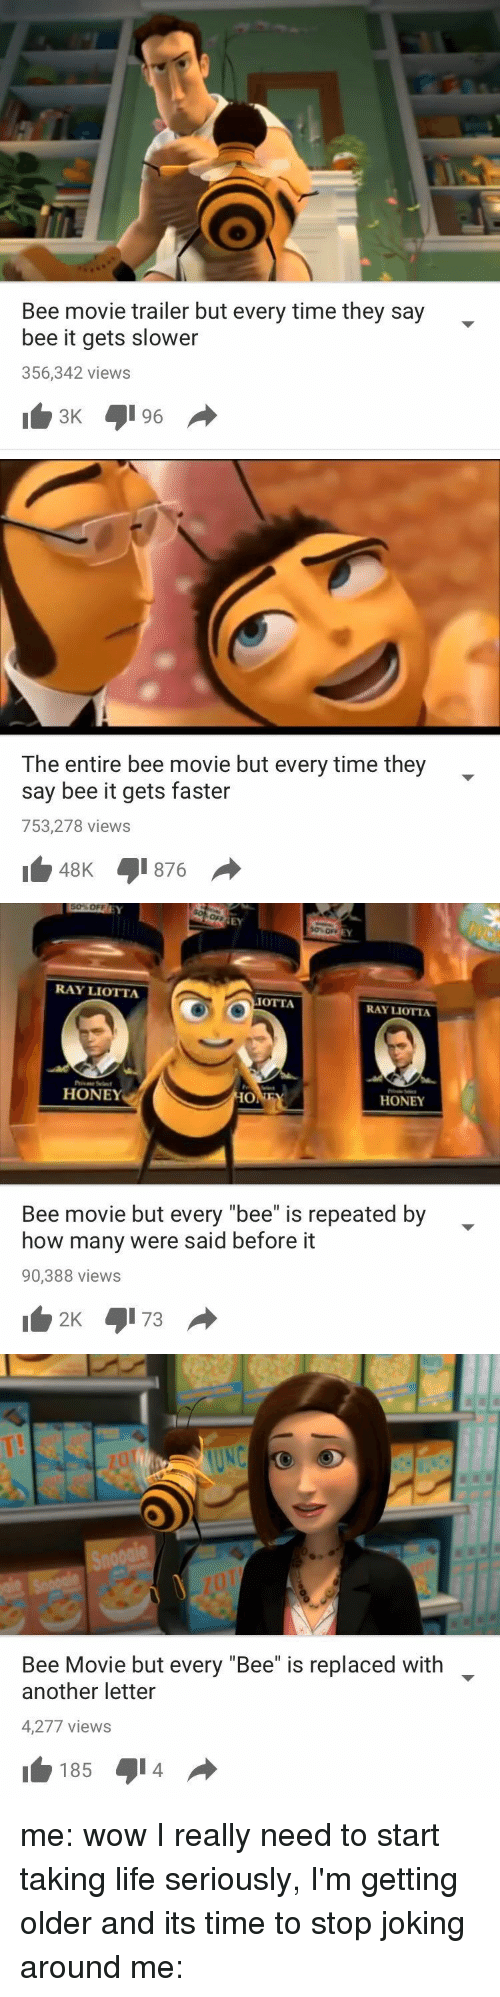 "Bee Movie, Ray Liotta, and Girl Memes: Bee movie trailer but every time they say  bee it gets slower  356,342 views   The entire bee movie but every time they  say bee it gets faster  753,278 views  48K 876   RAY LIOTTA  OTTA  RAY LIOTTA  HONEY  HO  HONEY  Bee movie but every ""bee"" is repeated by  how many were said before it  90,388 views  2K 4173   Bee Movie but every ""Bee"" is replaced with  another letter  4,277 views  185 4014 me: wow I really need to start taking life seriously, I'm getting older and its time to stop joking around me:"